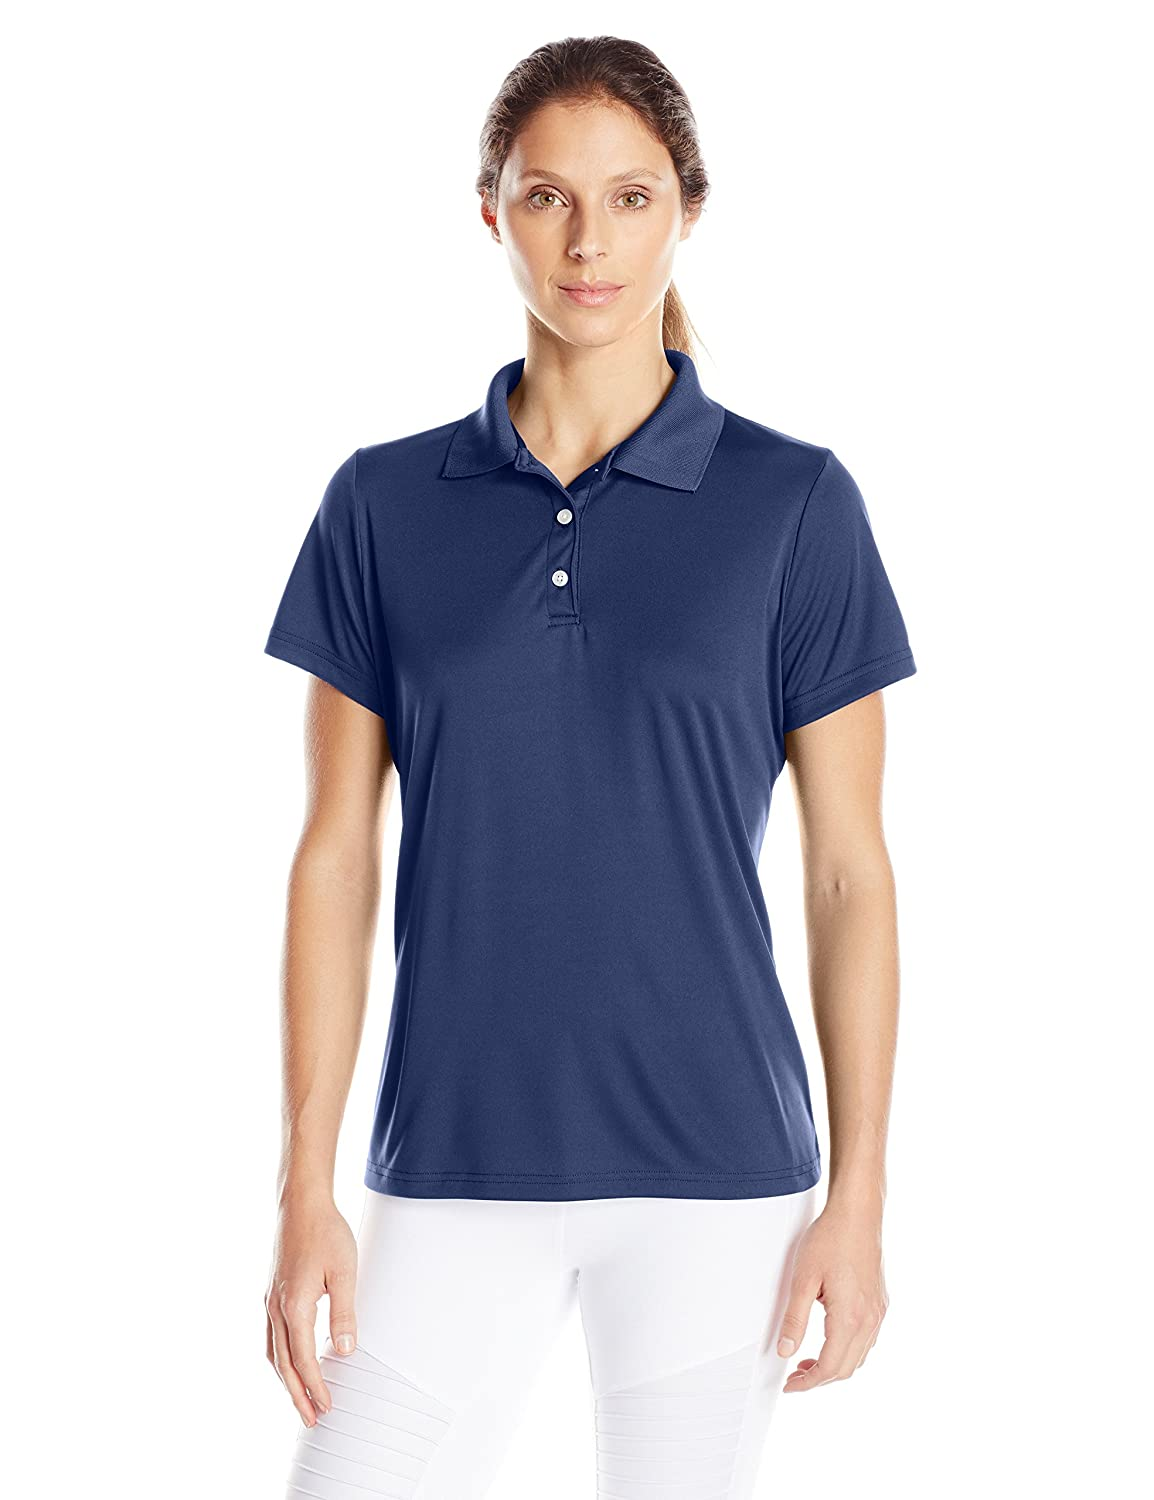 Hanes womens Sport Cool Dri Performance Polo Hanes Women's Activewear O480W